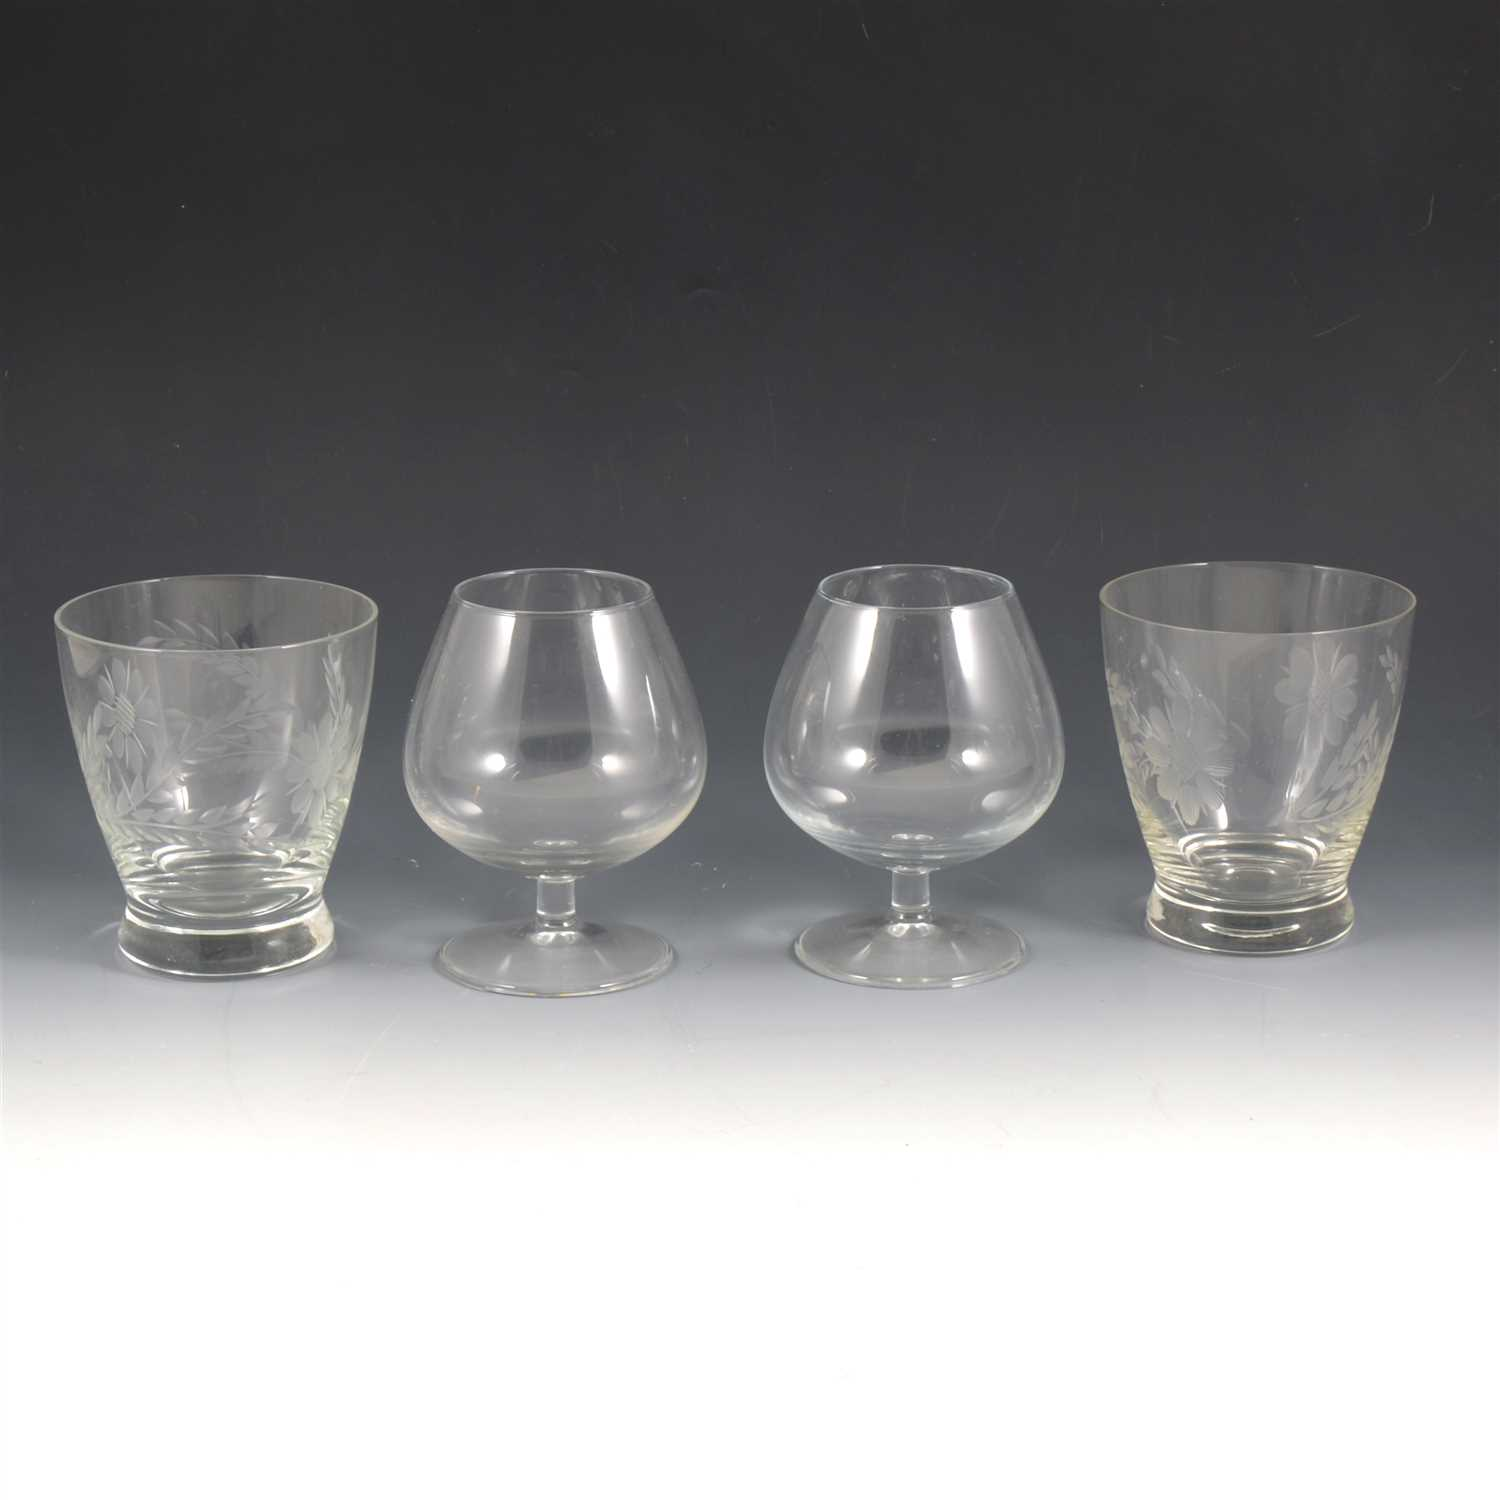 Lot 57-A quantity of etched and cut table glass, to include eight etched glass rinsers, a jug and set of six grape and vine etched squat goblets, six heavy goblets, six brandy balloons, six sherry glasses